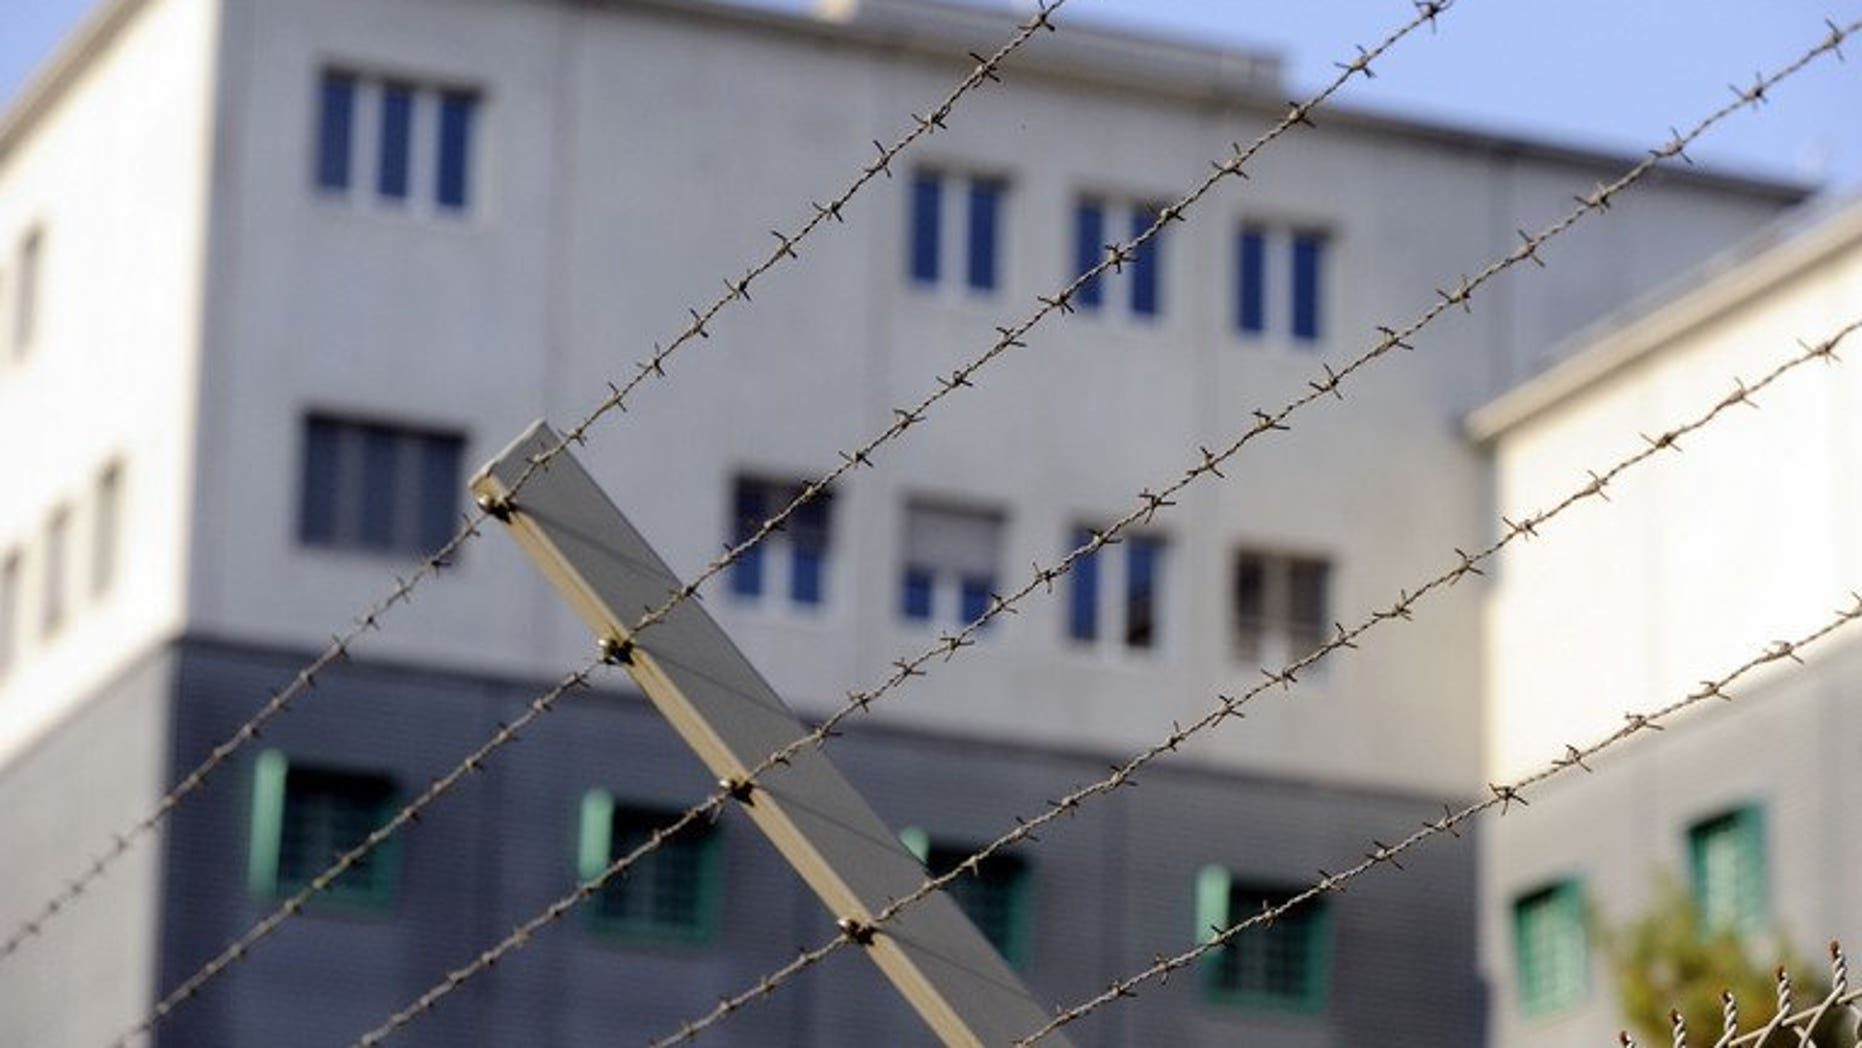 "File picture shows a prison in Kloten, Switzerland on September 27, 2009. A Bosnian from the ""Pink Panther"" gang of international jewel thieves escaped from a Swiss prison in a dramatic break-out involving a fellow inmate and two armed accomplices, police said Friday."